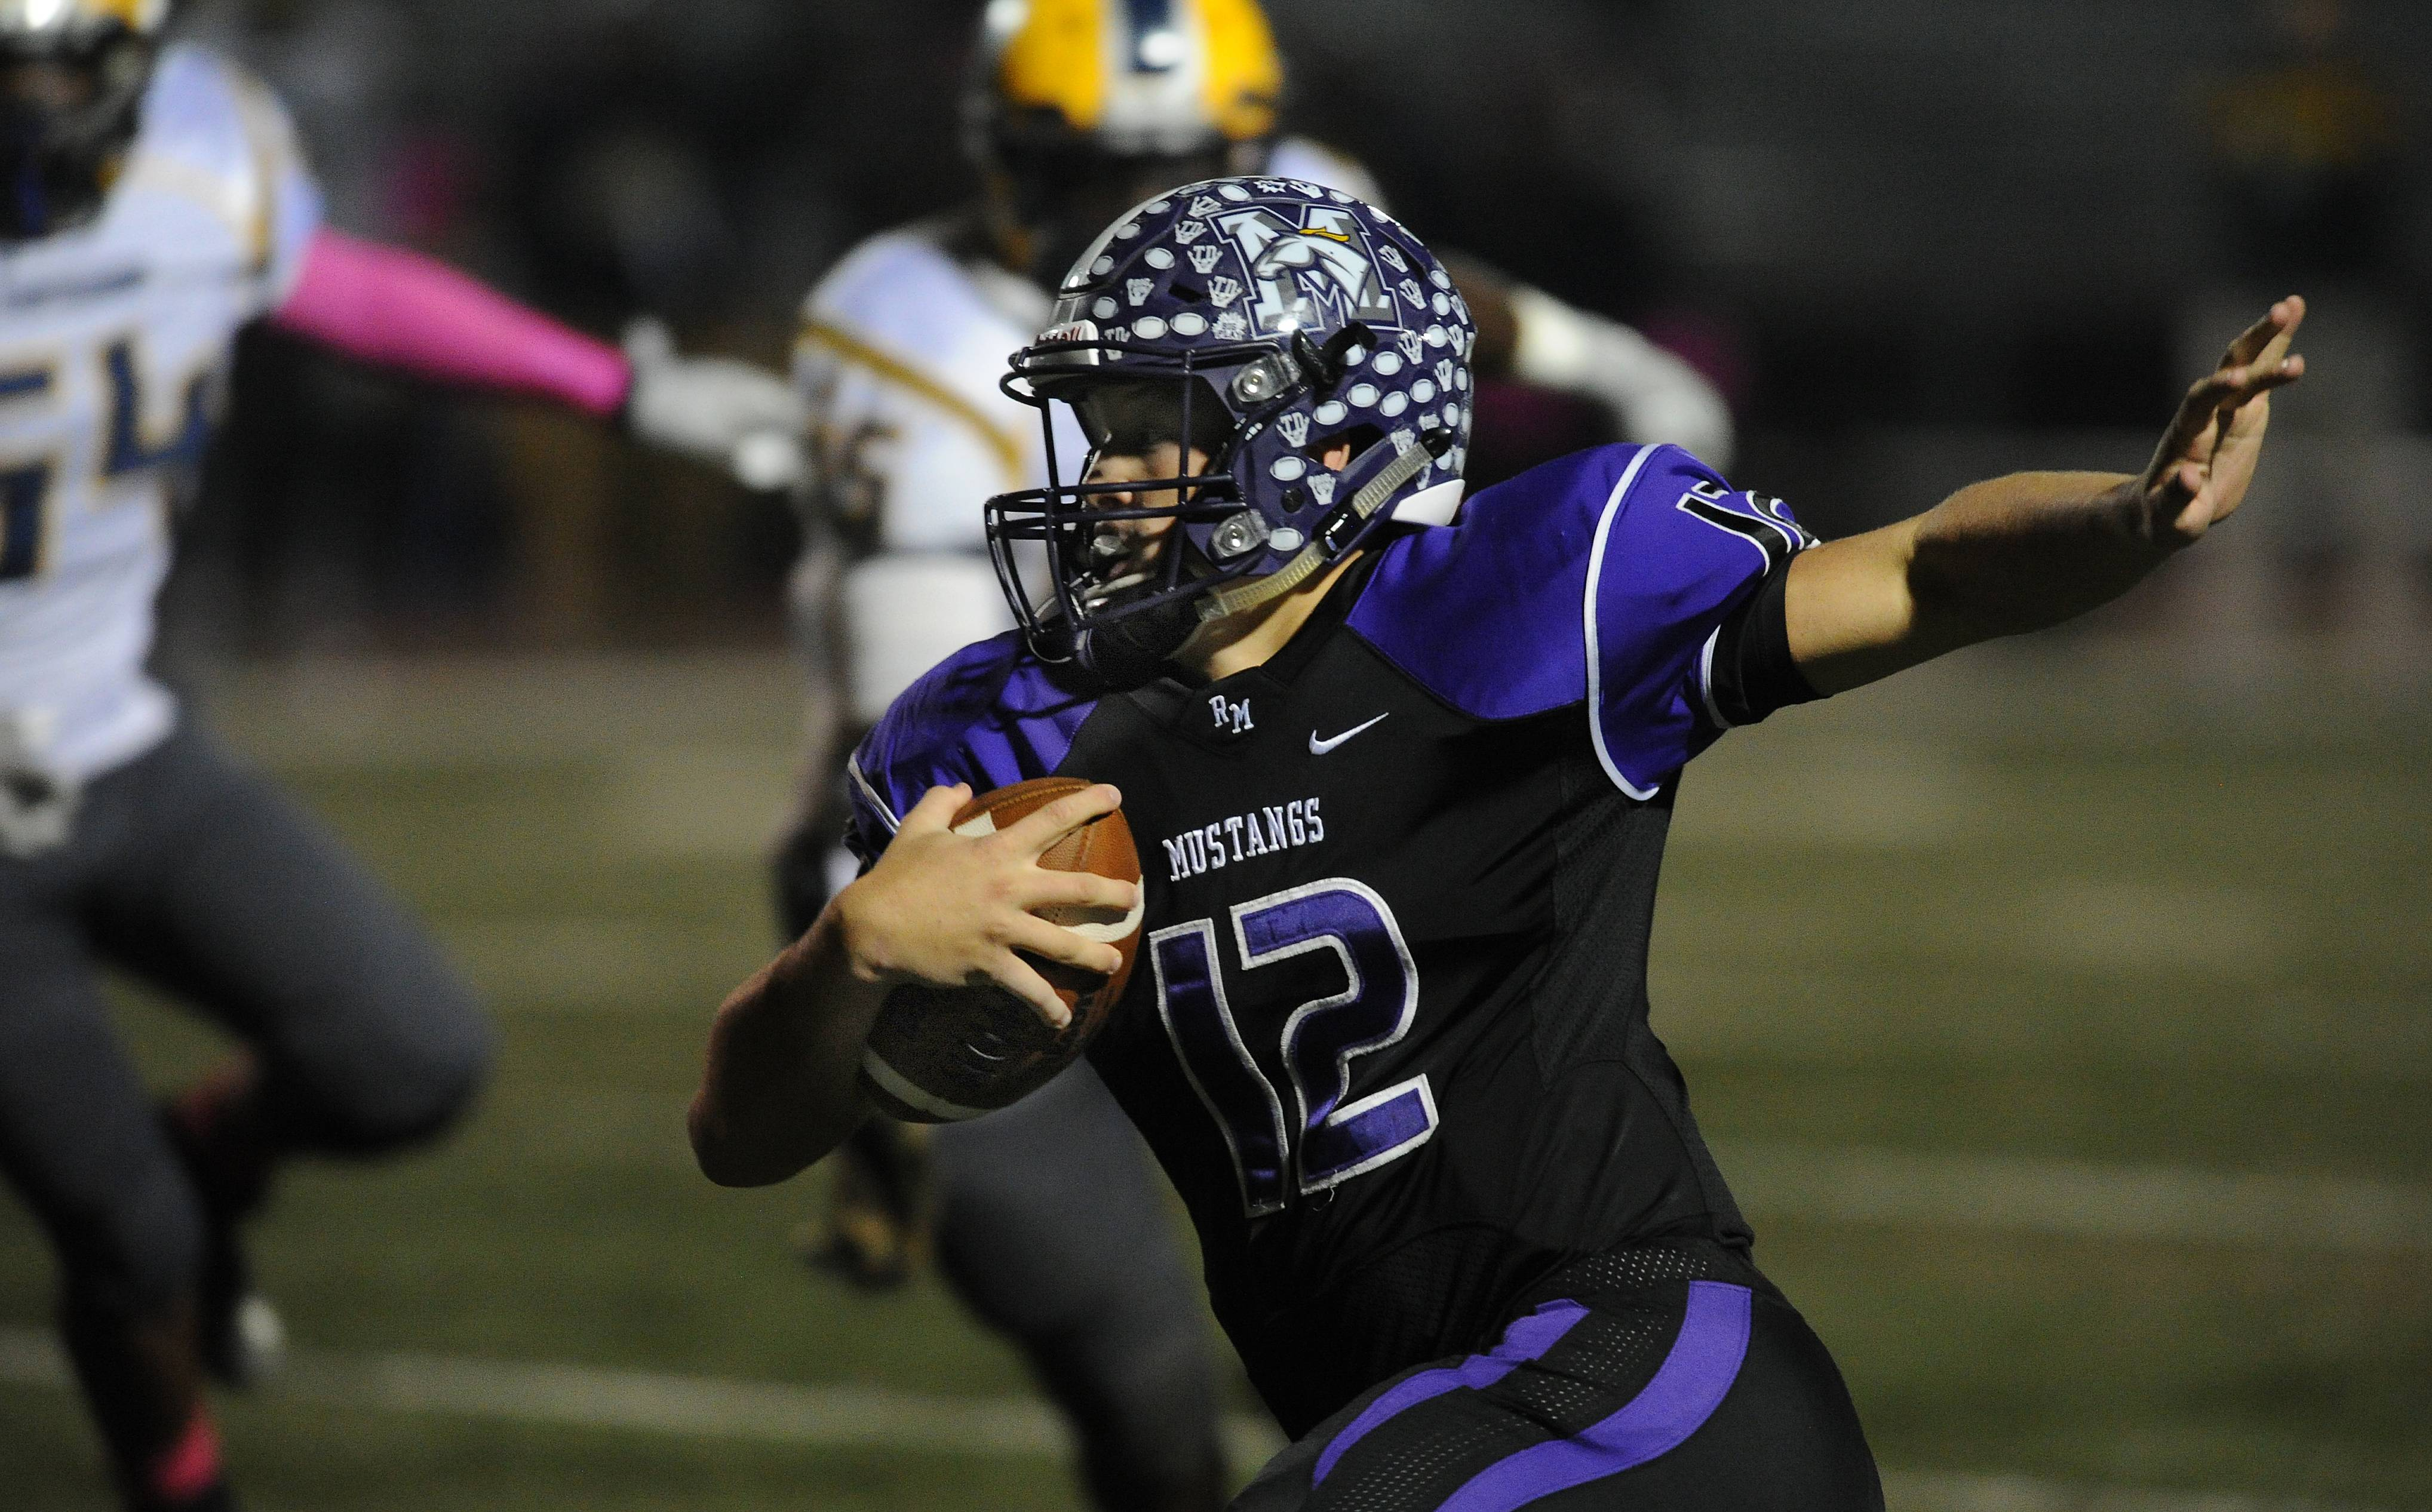 Rolling Meadows' Asher O'Hara keeps the ball for short yardage in the first quarter against Thornwood.